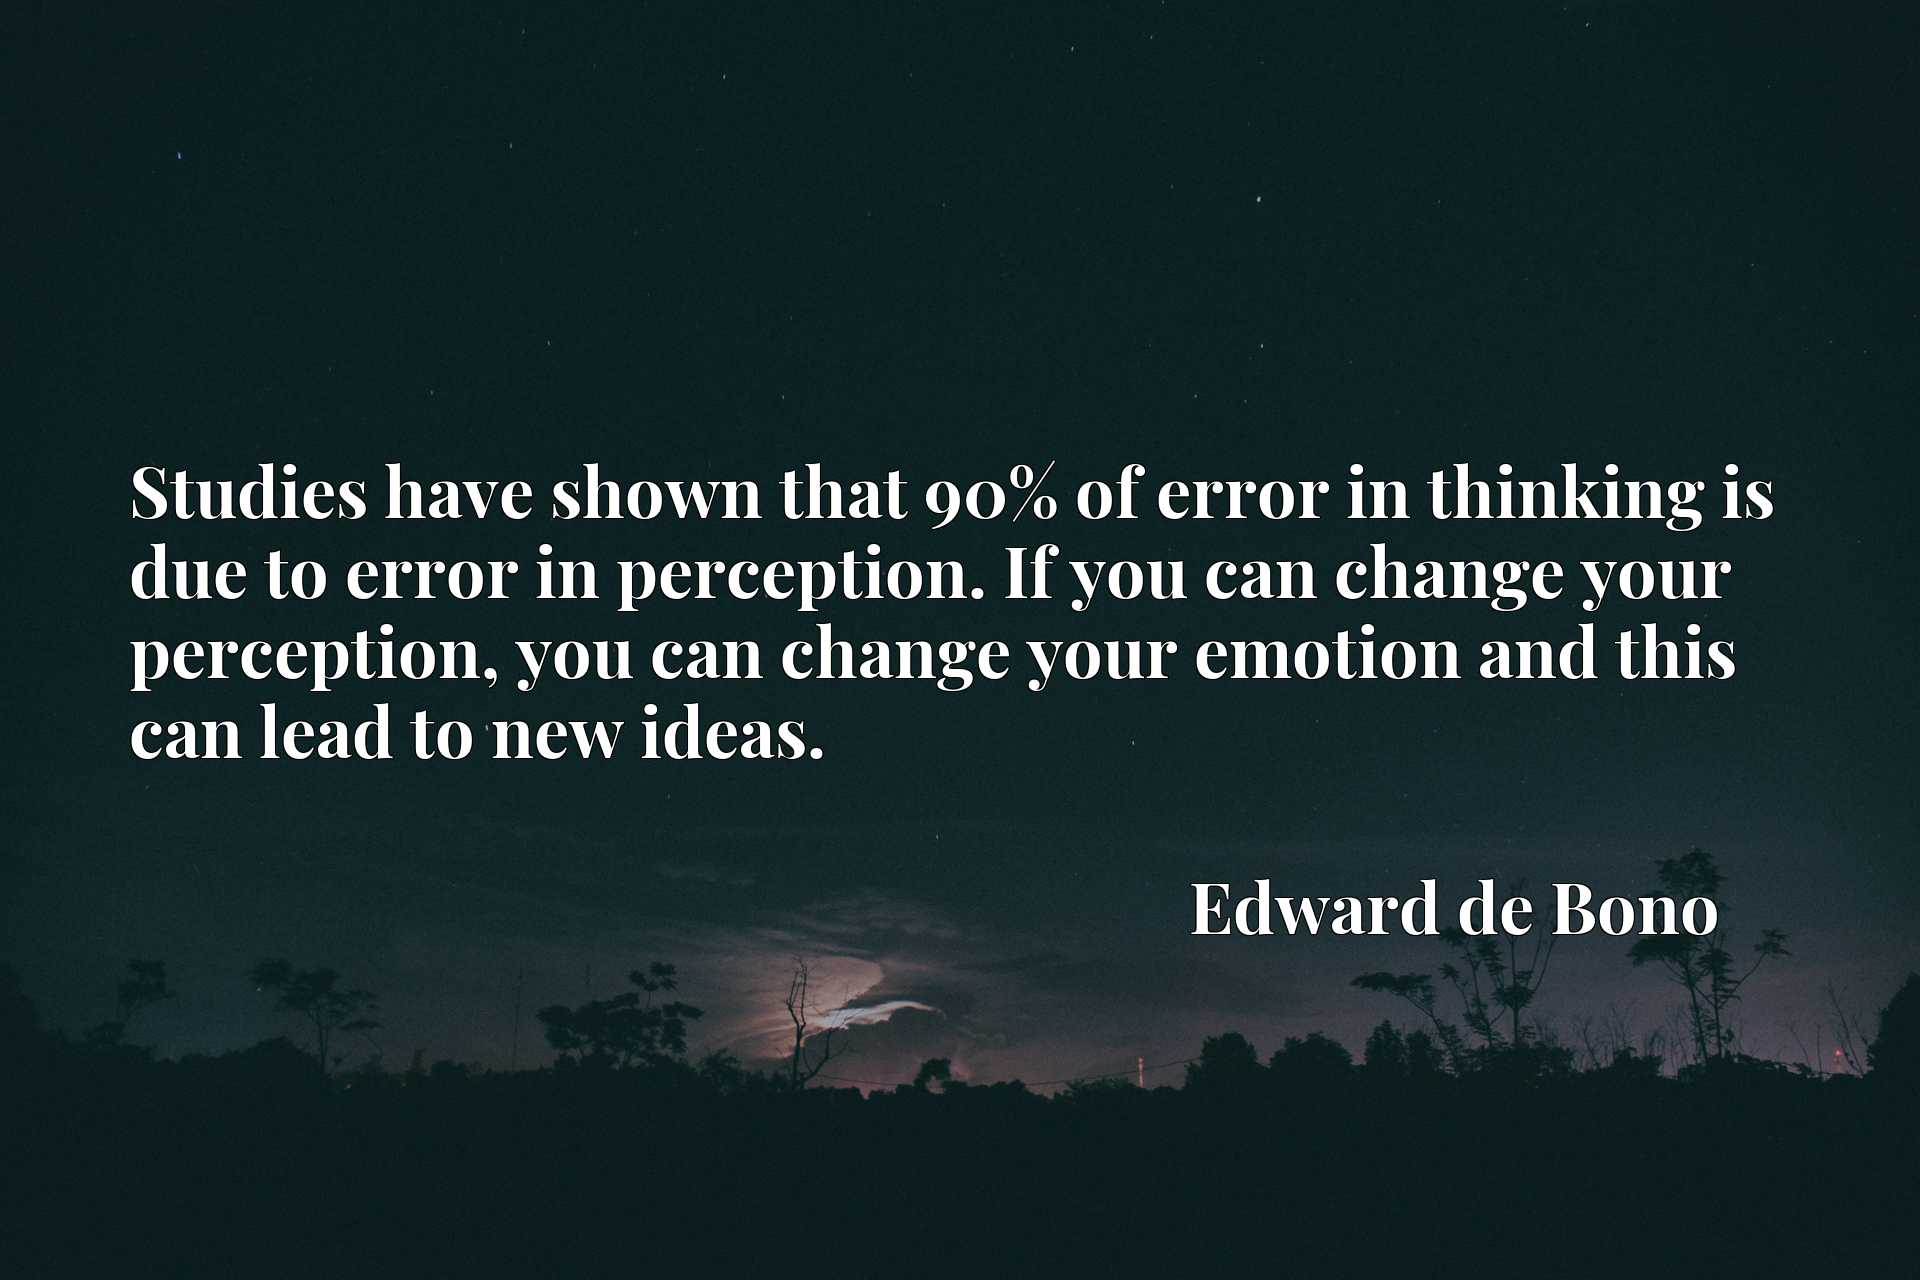 Studies have shown that 90% of error in thinking is due to error in perception. If you can change your perception, you can change your emotion and this can lead to new ideas.